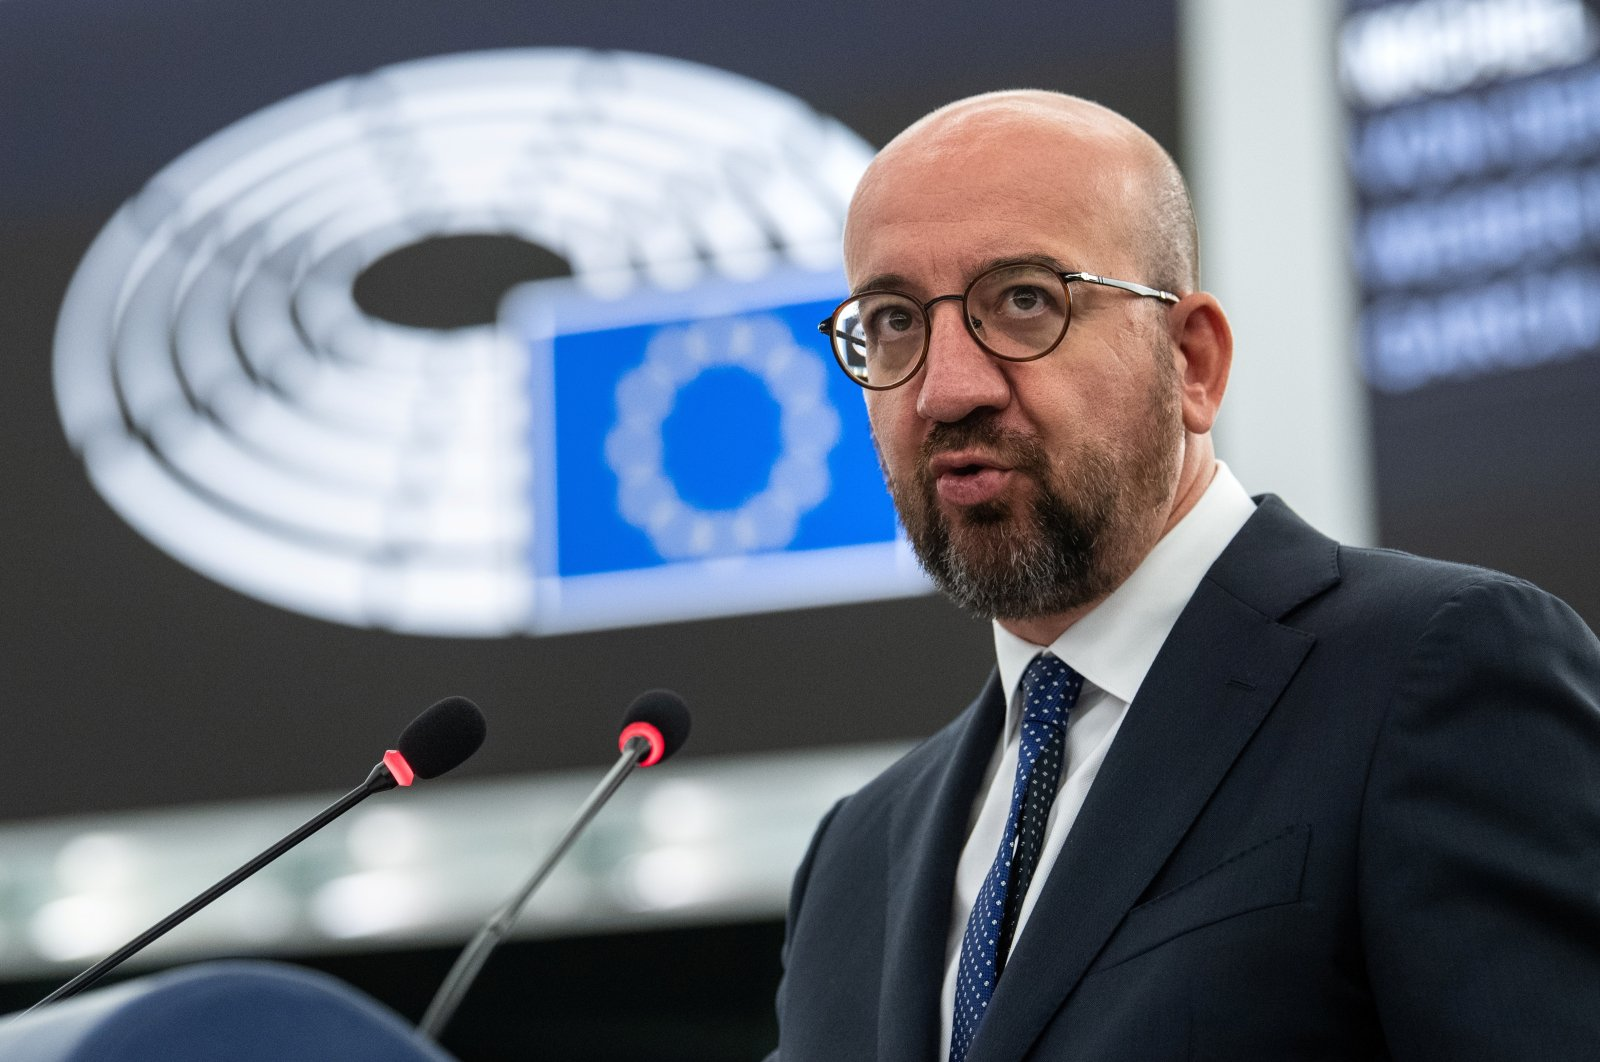 European Council President Charles Michel delivers a speech during a plenary session at the European Parliament in Strasbourg, France, July 7, 2021. (REUTERS Photo)